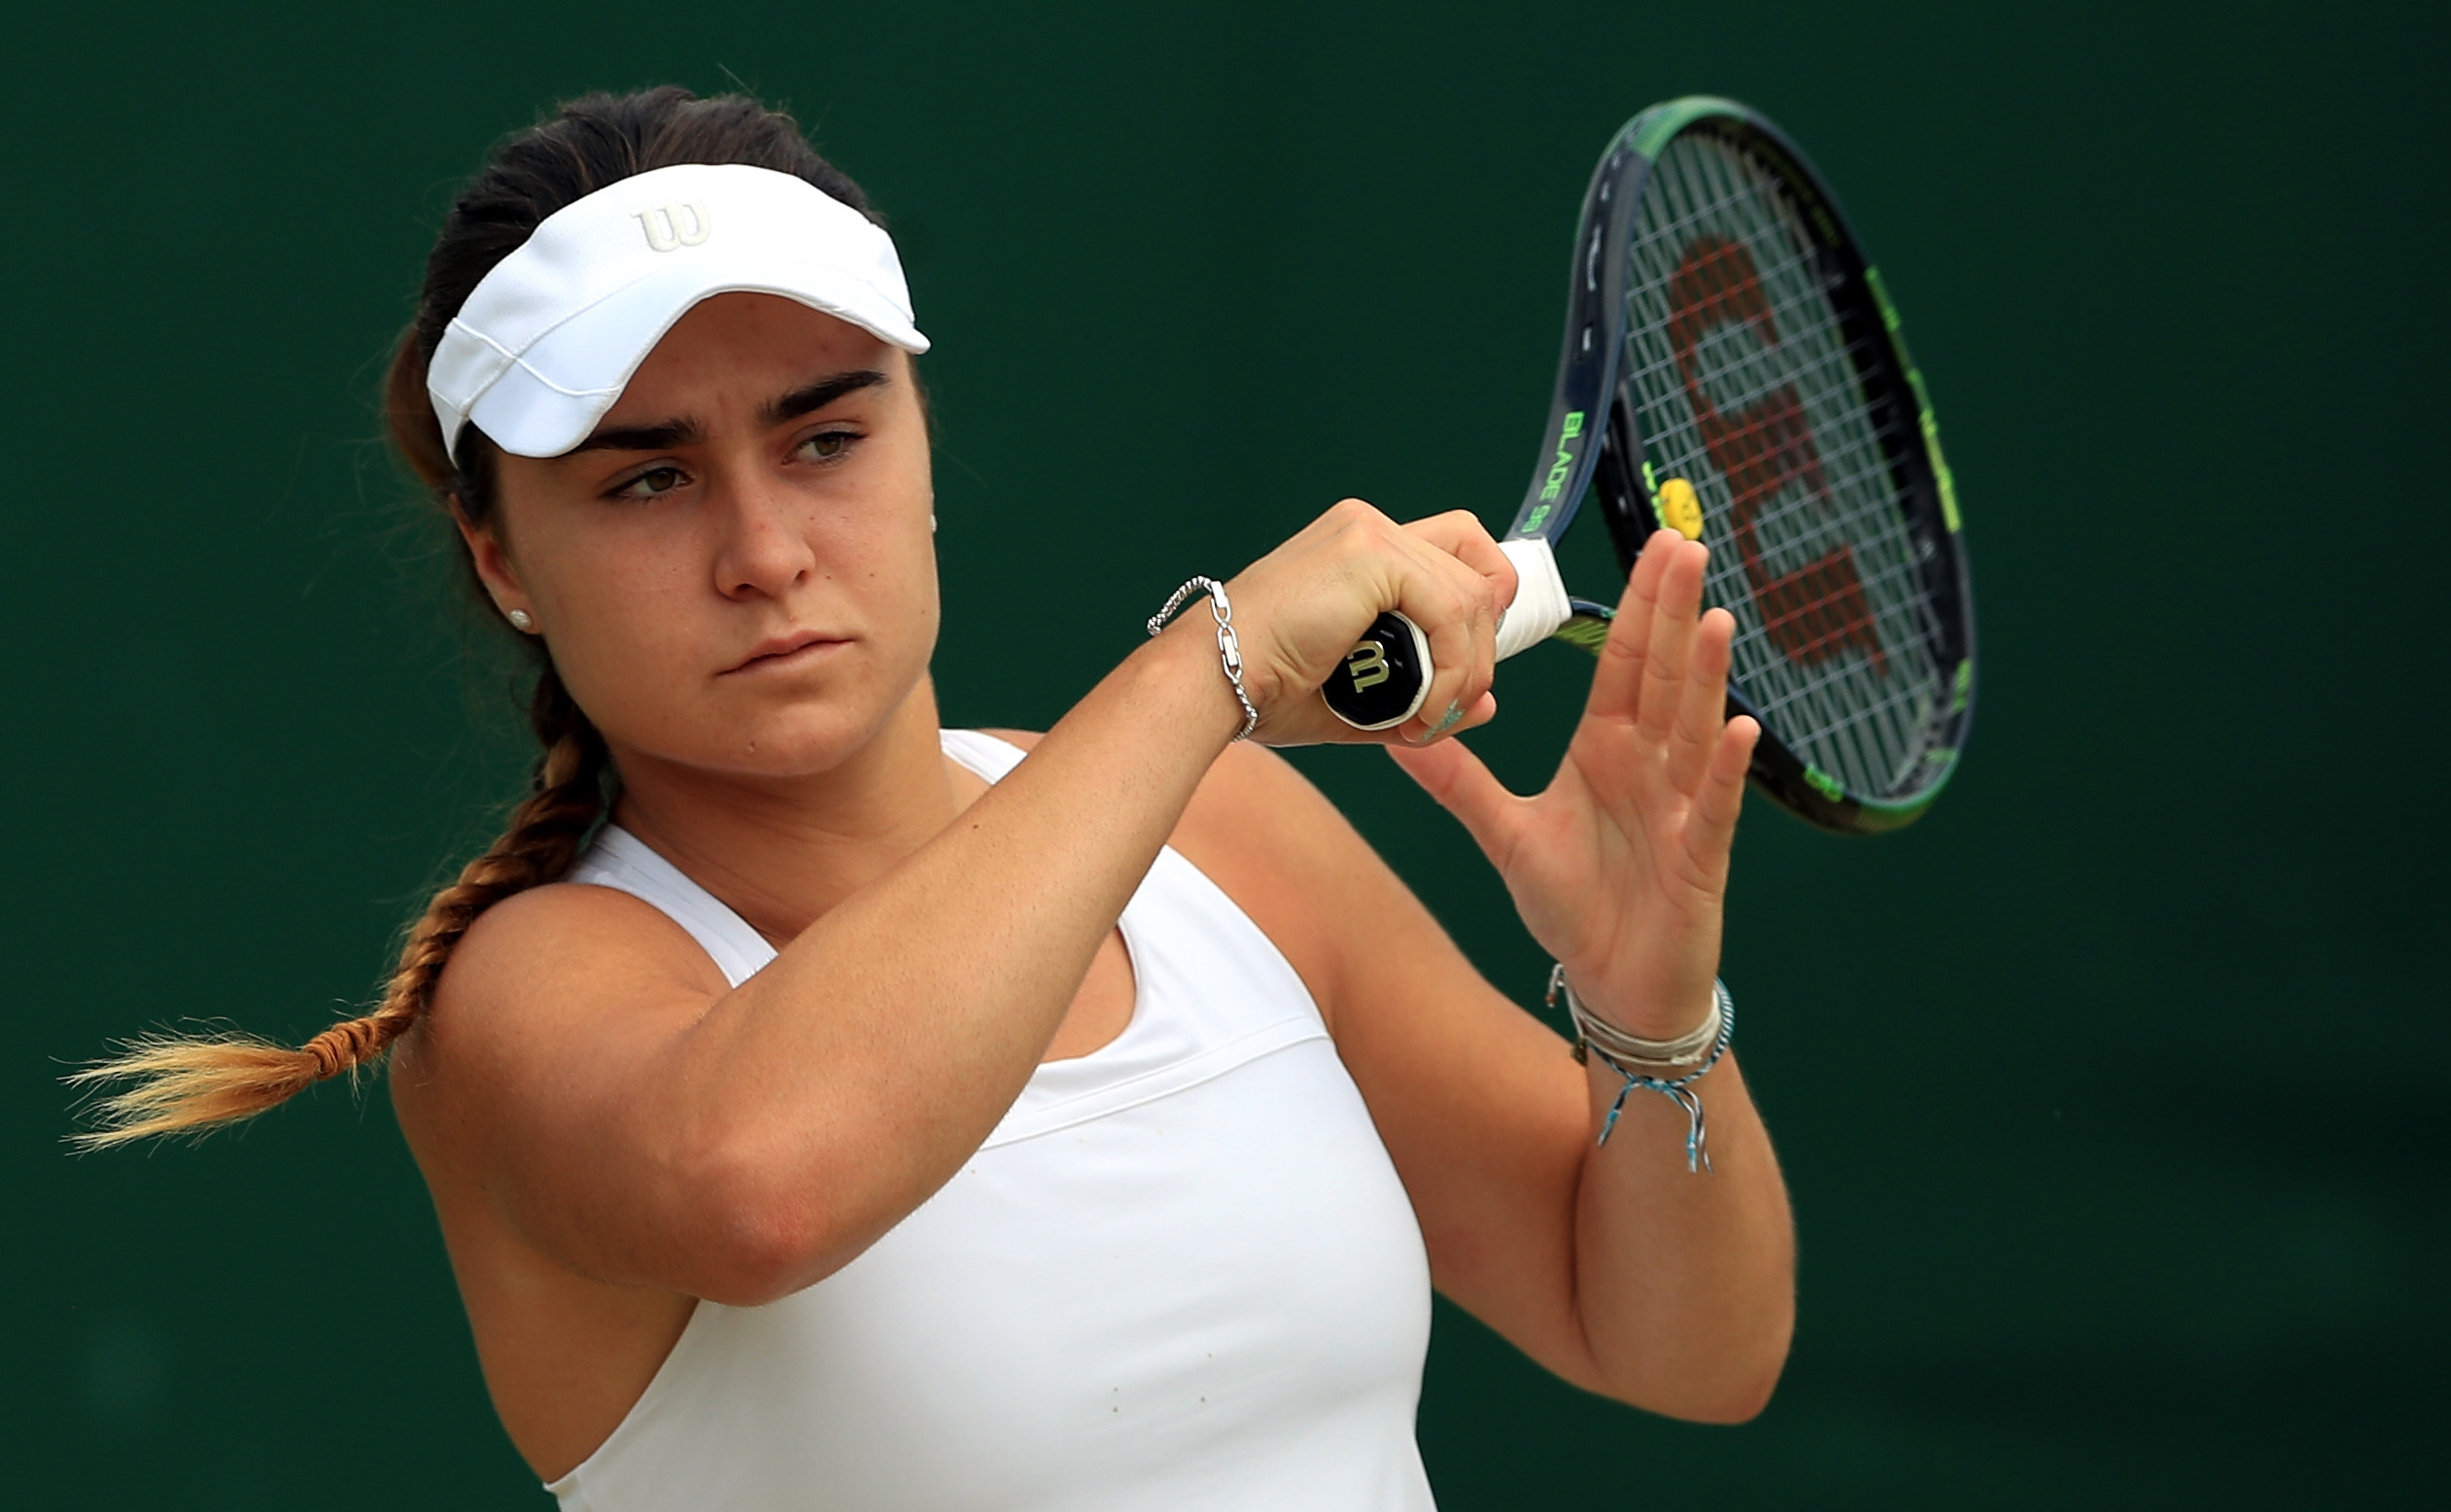 British police are investigating allegations that Gabriella Taylor, a player at the Wimbledon tennis tournament, was poisoned, after she fell ill with a bacterial infection that can be spread through rat urine